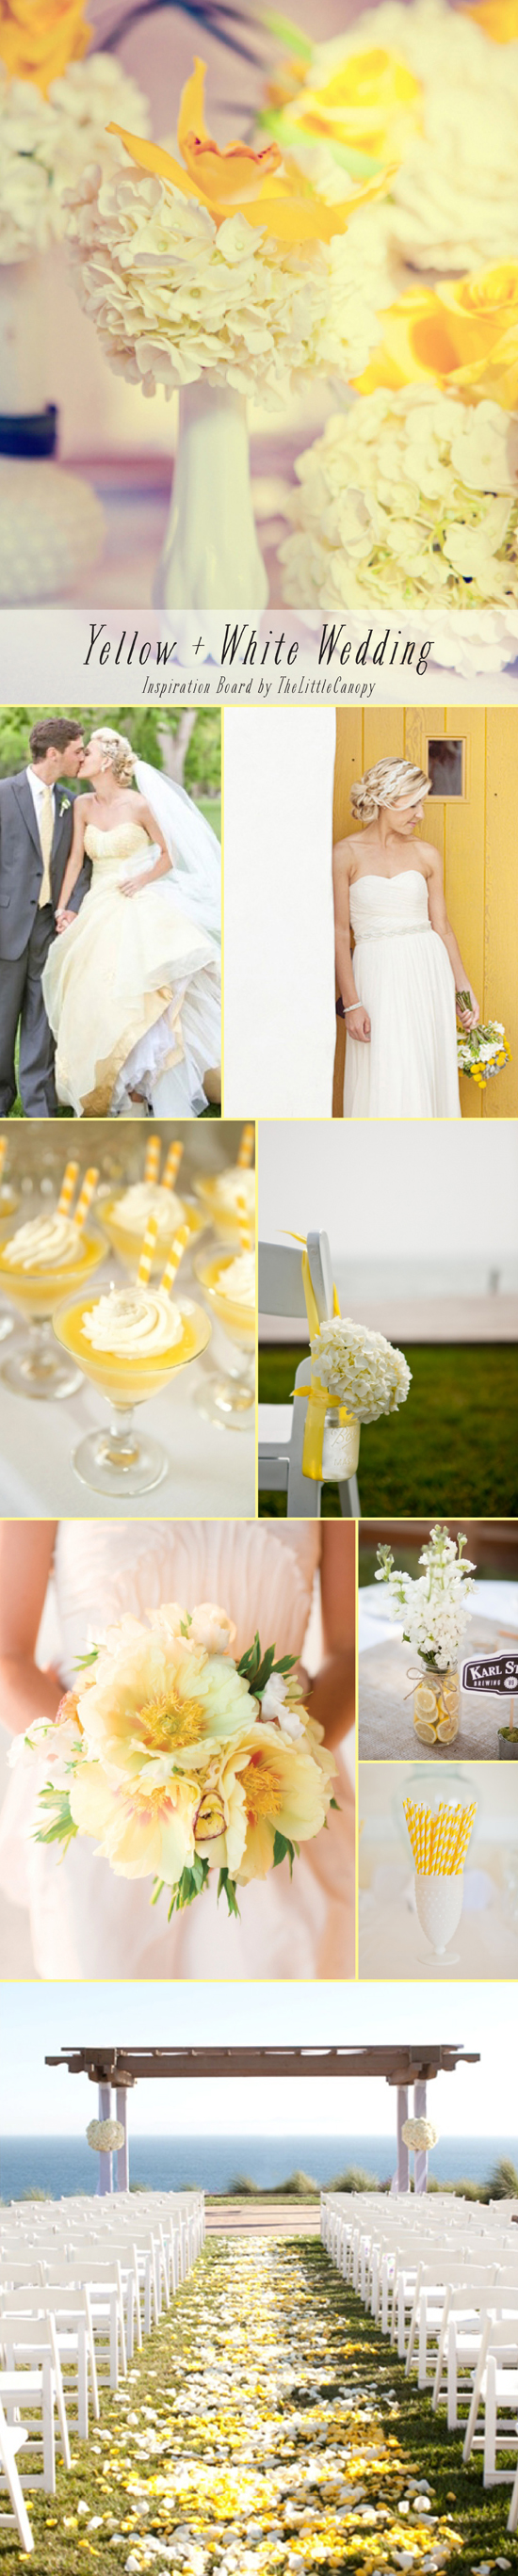 70a6a7b01f2 Inspiration Board  Yellow + White Wedding    Perfect for summer and fall  weddings